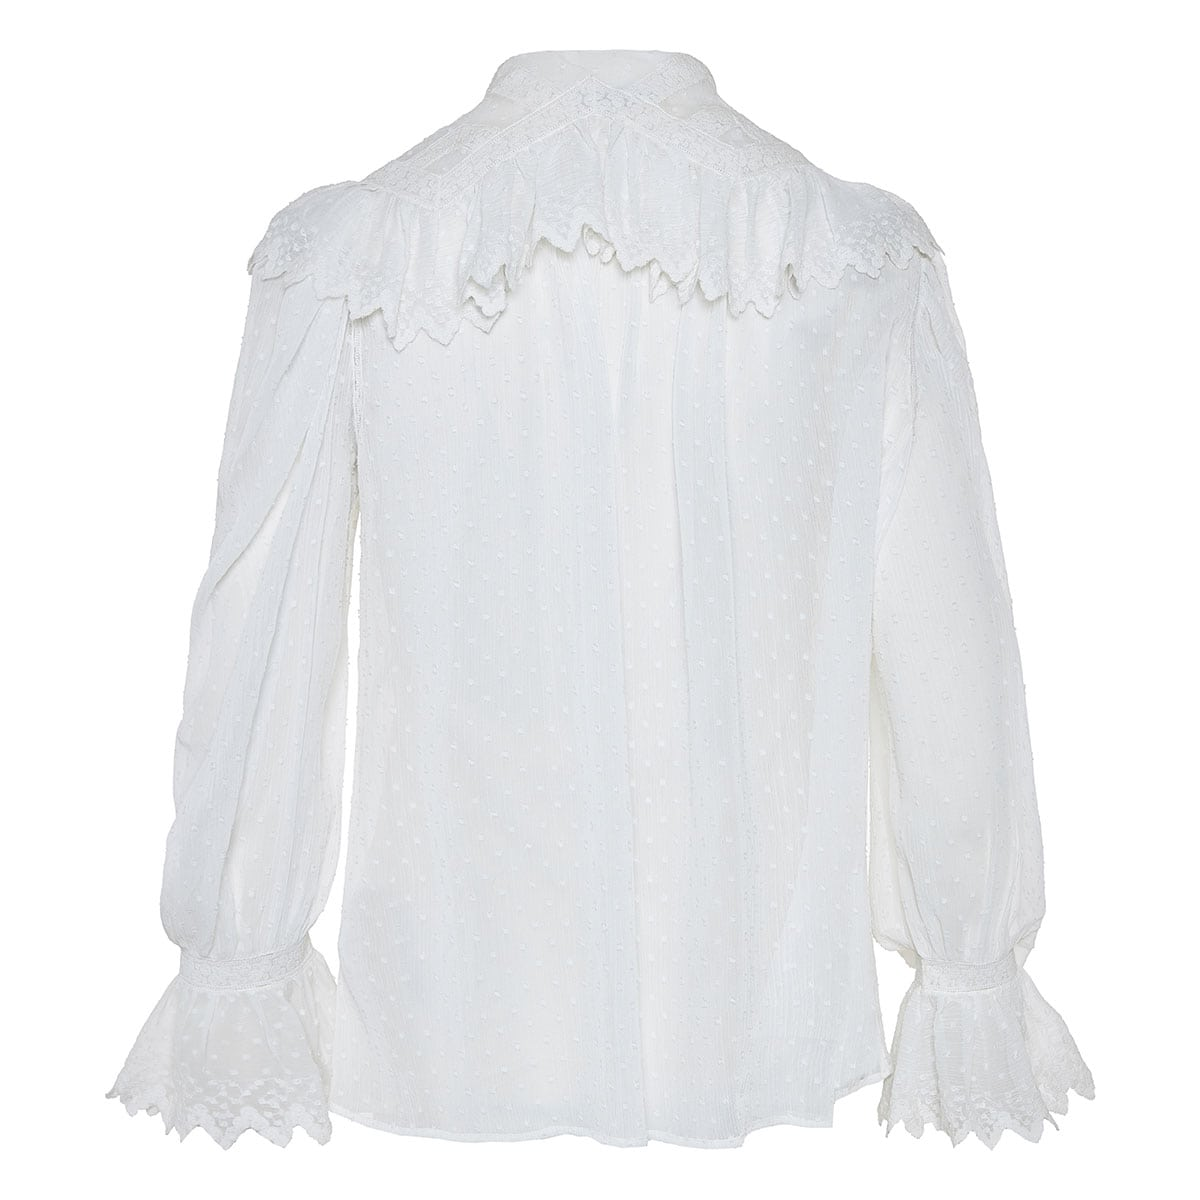 Ruffle-trimmed sheer embroidered shirt